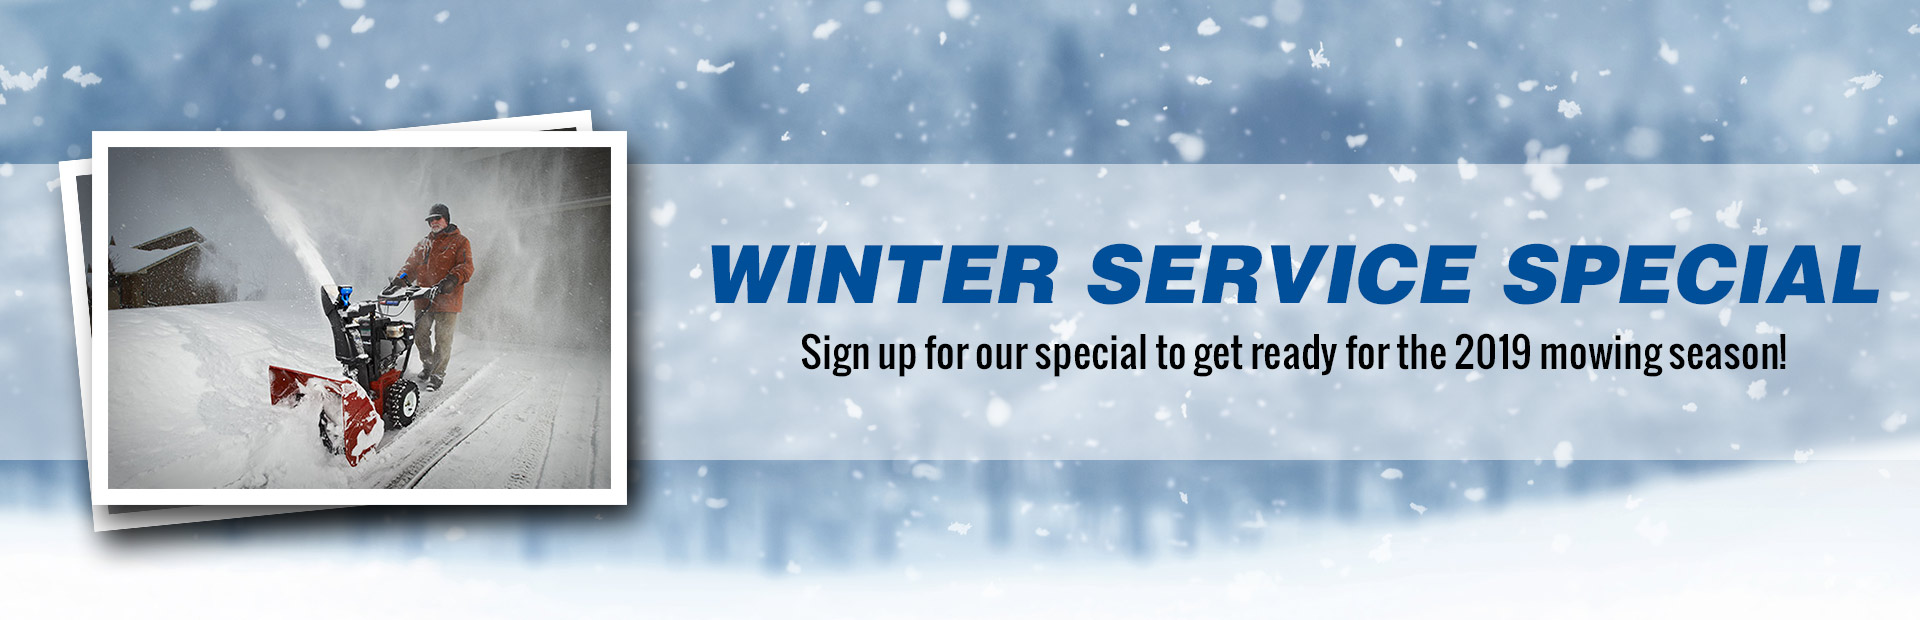 Winter Service Special: Sign up for our special to get ready for the 2019 mowing season!